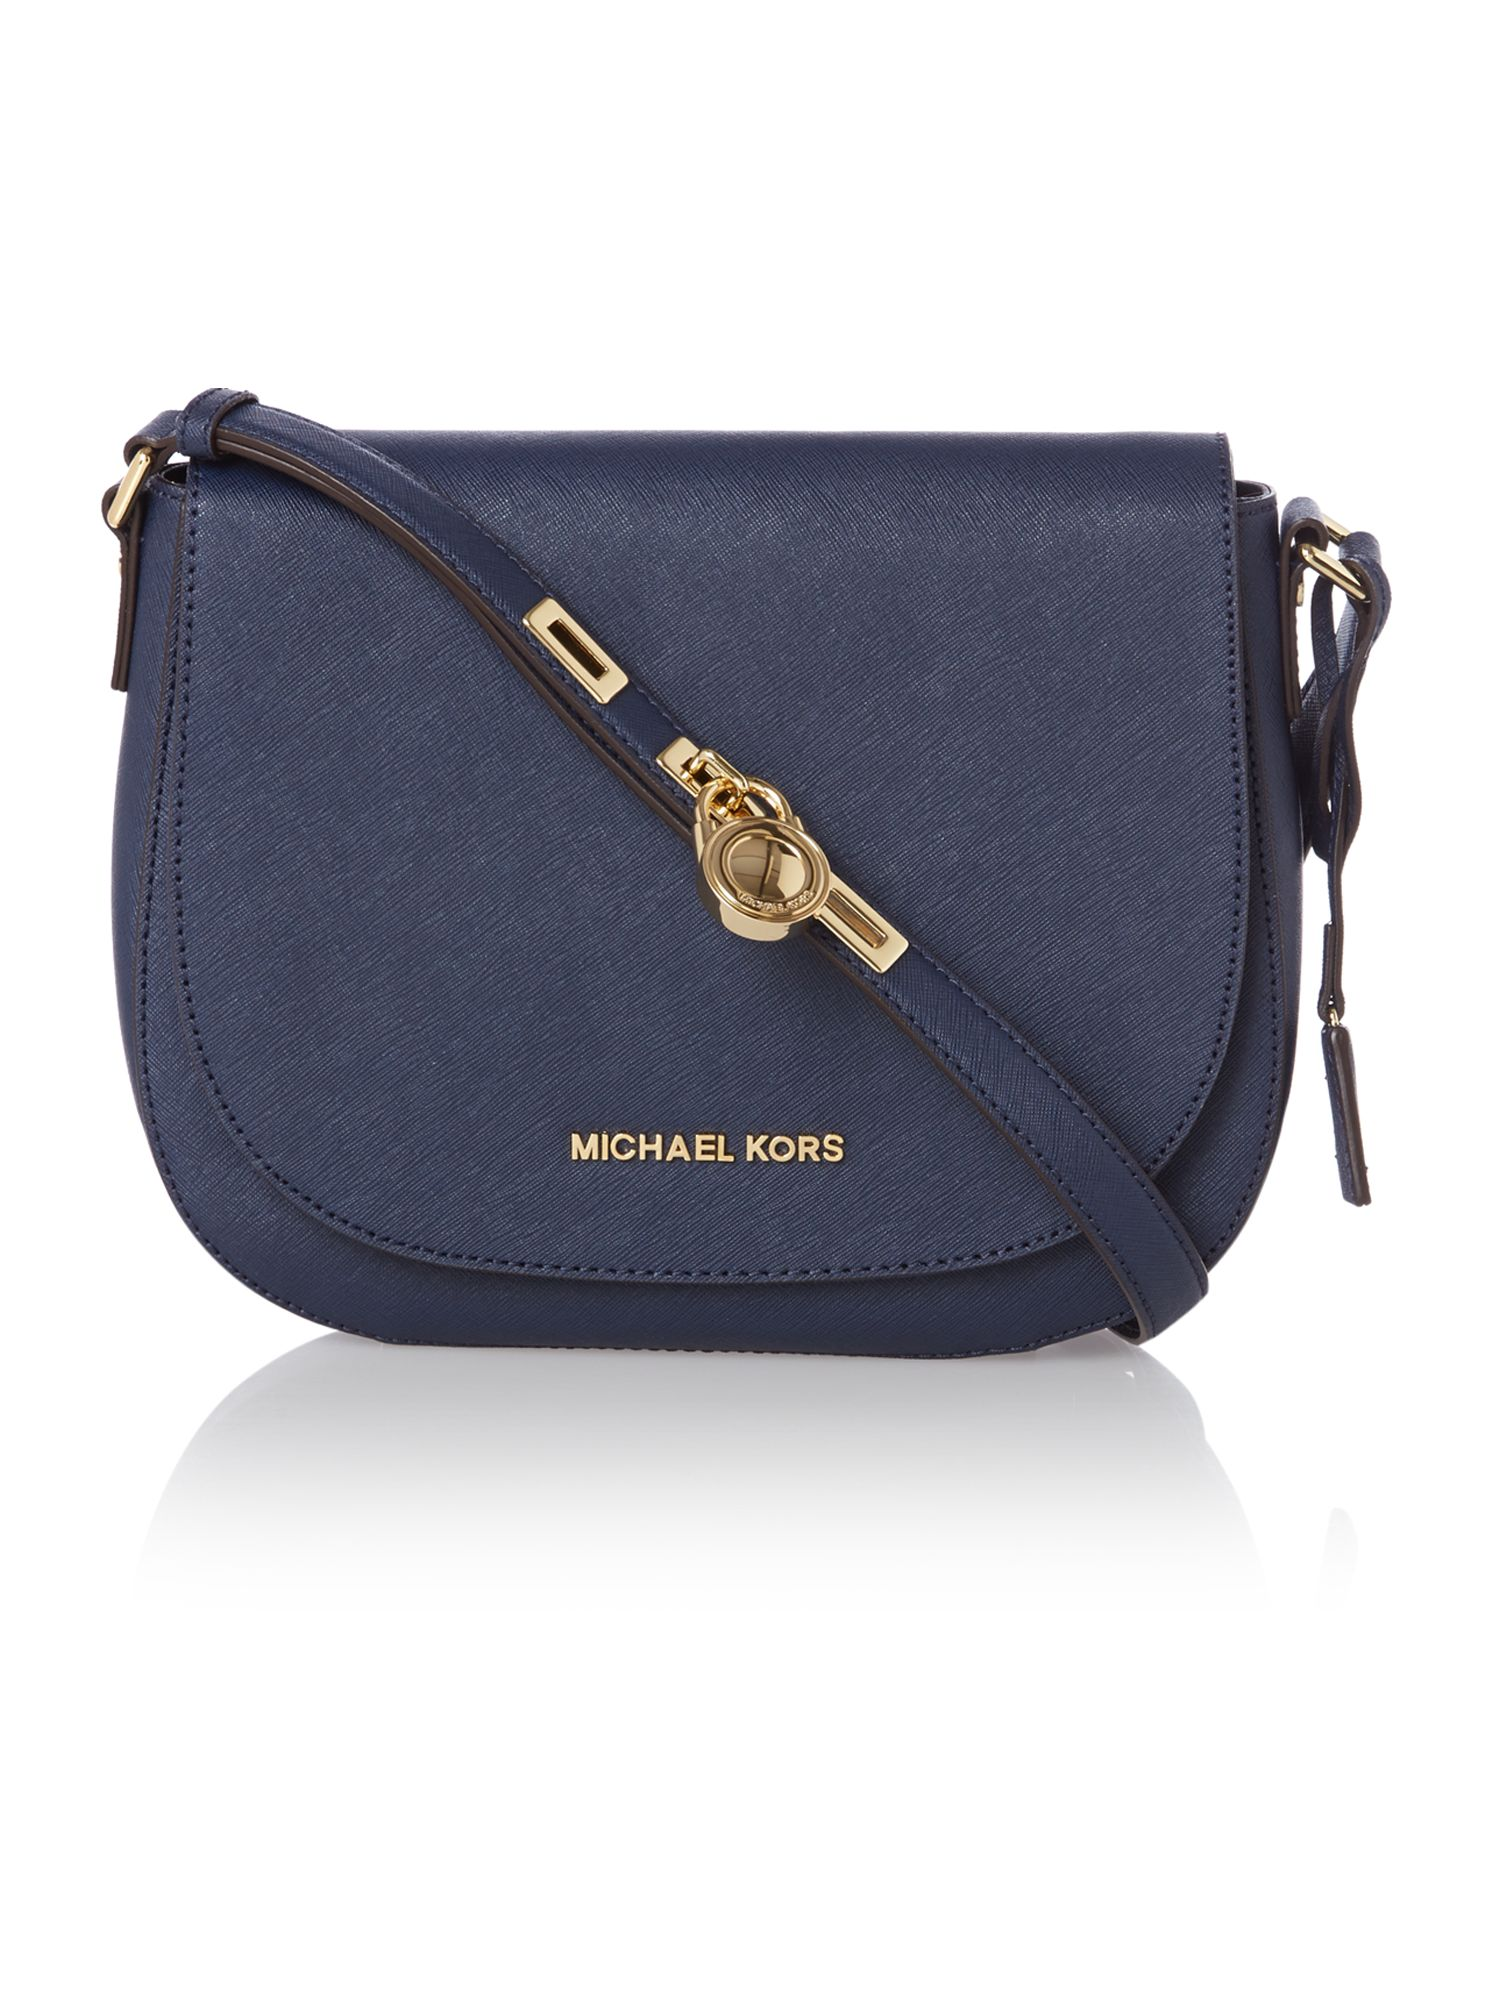 Hamilton navy flapover cross body